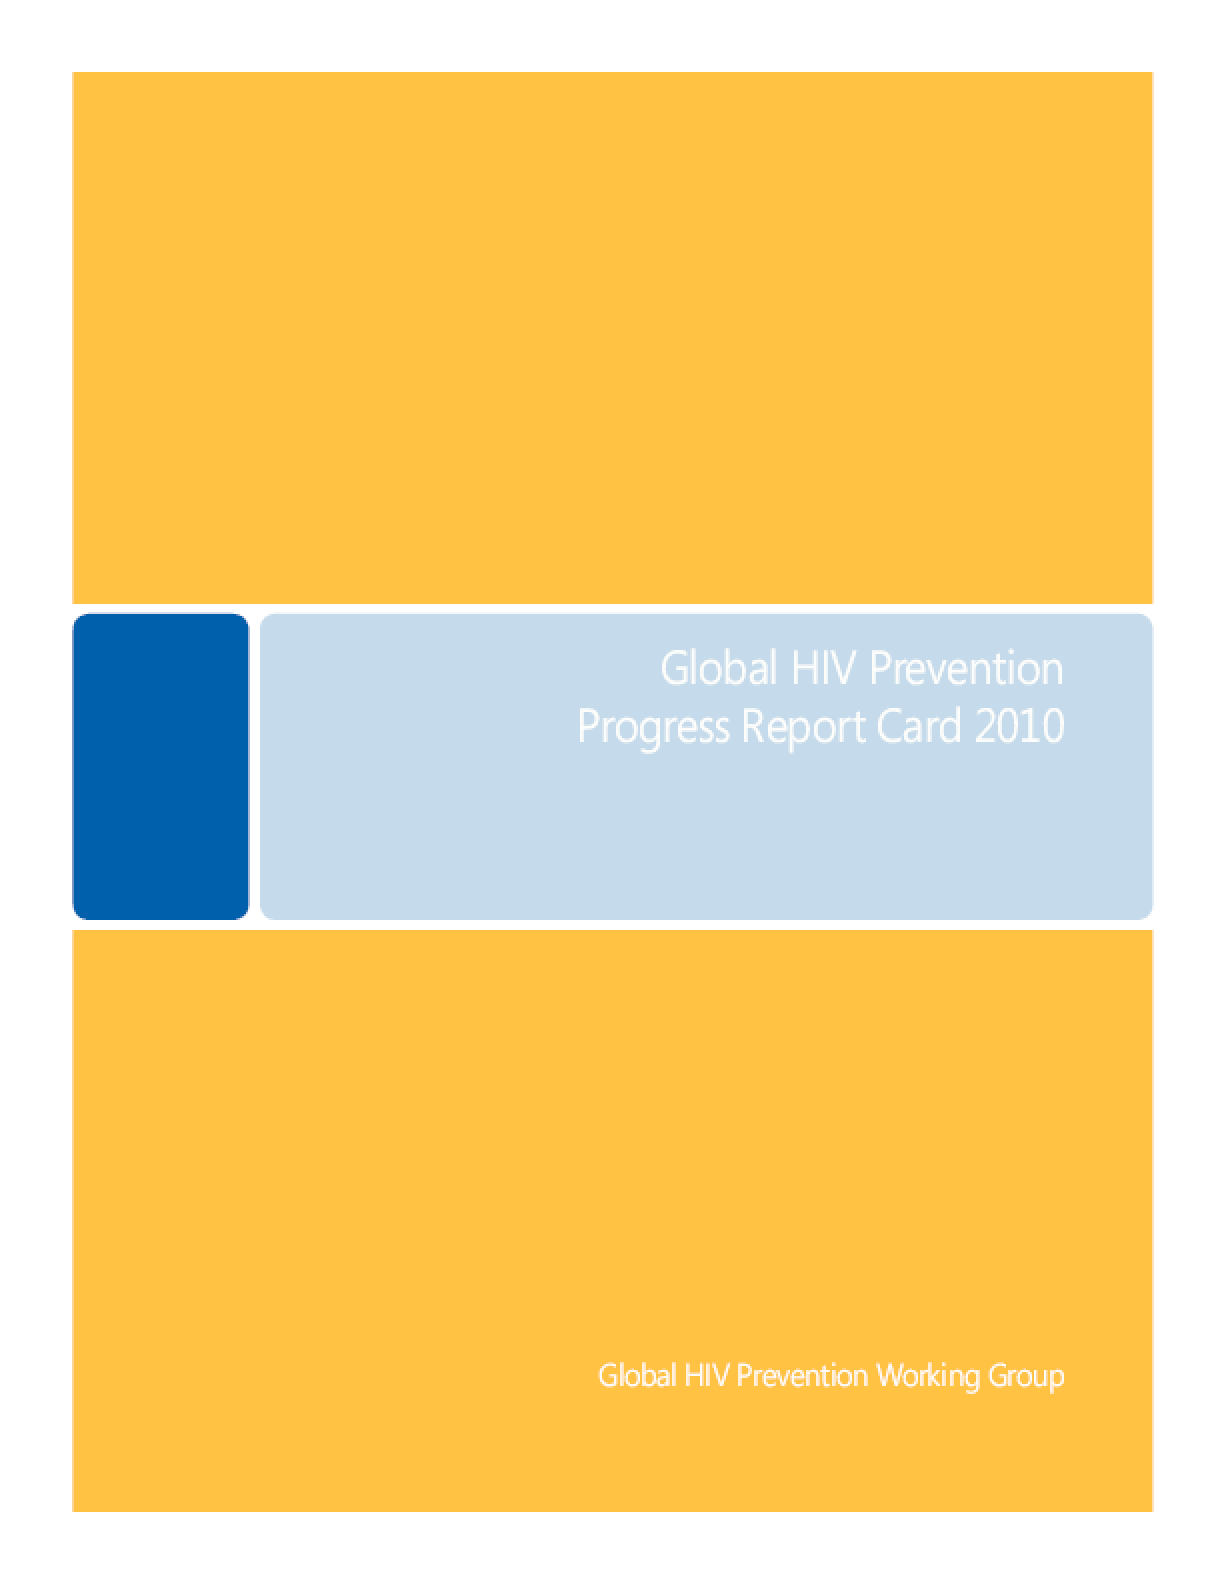 Global HIV Prevention Progress Report Card 2010